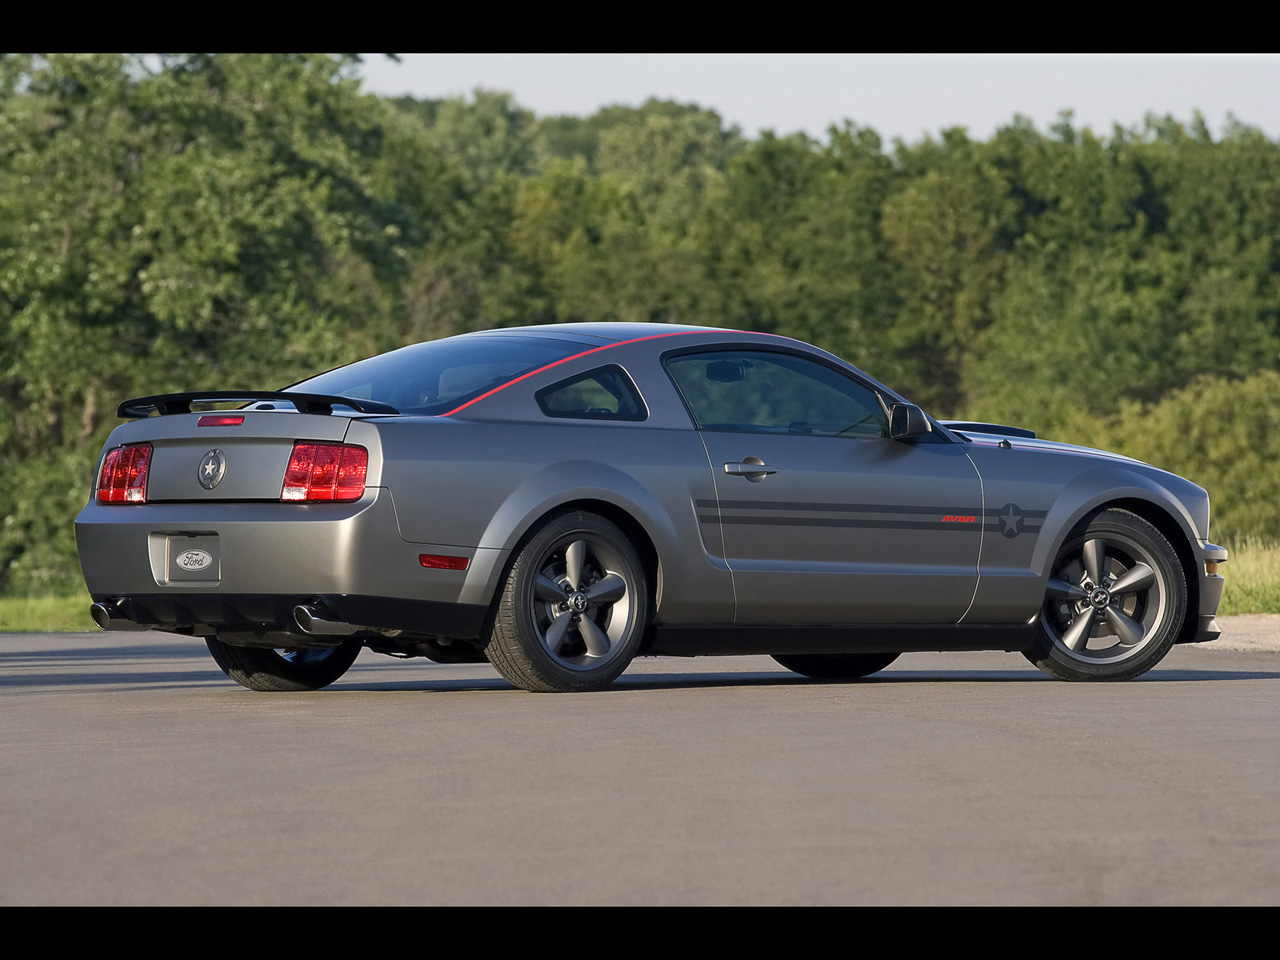 2009 Ford Mustang #5